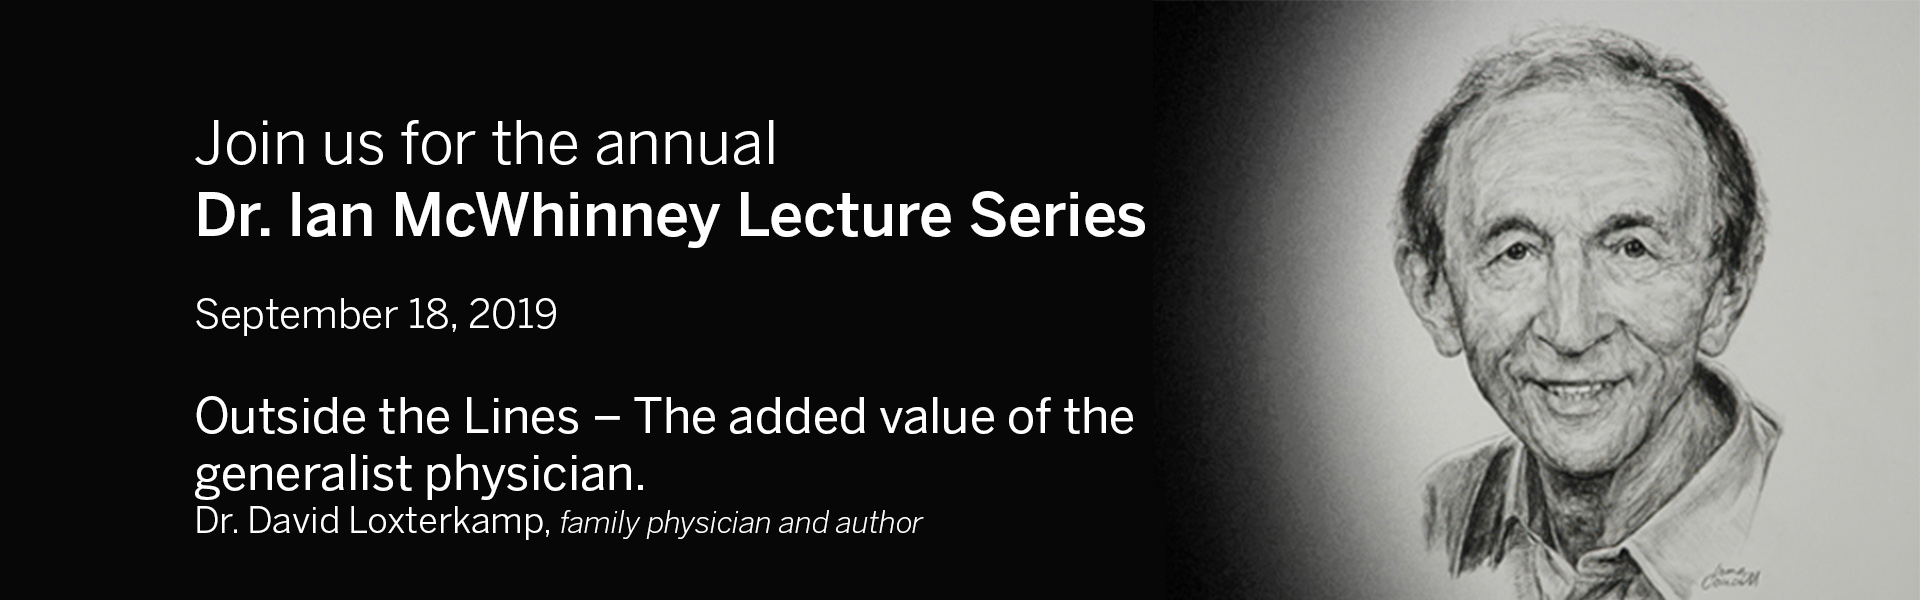 Dr. Ian McWhinney Lecture Series - 2019